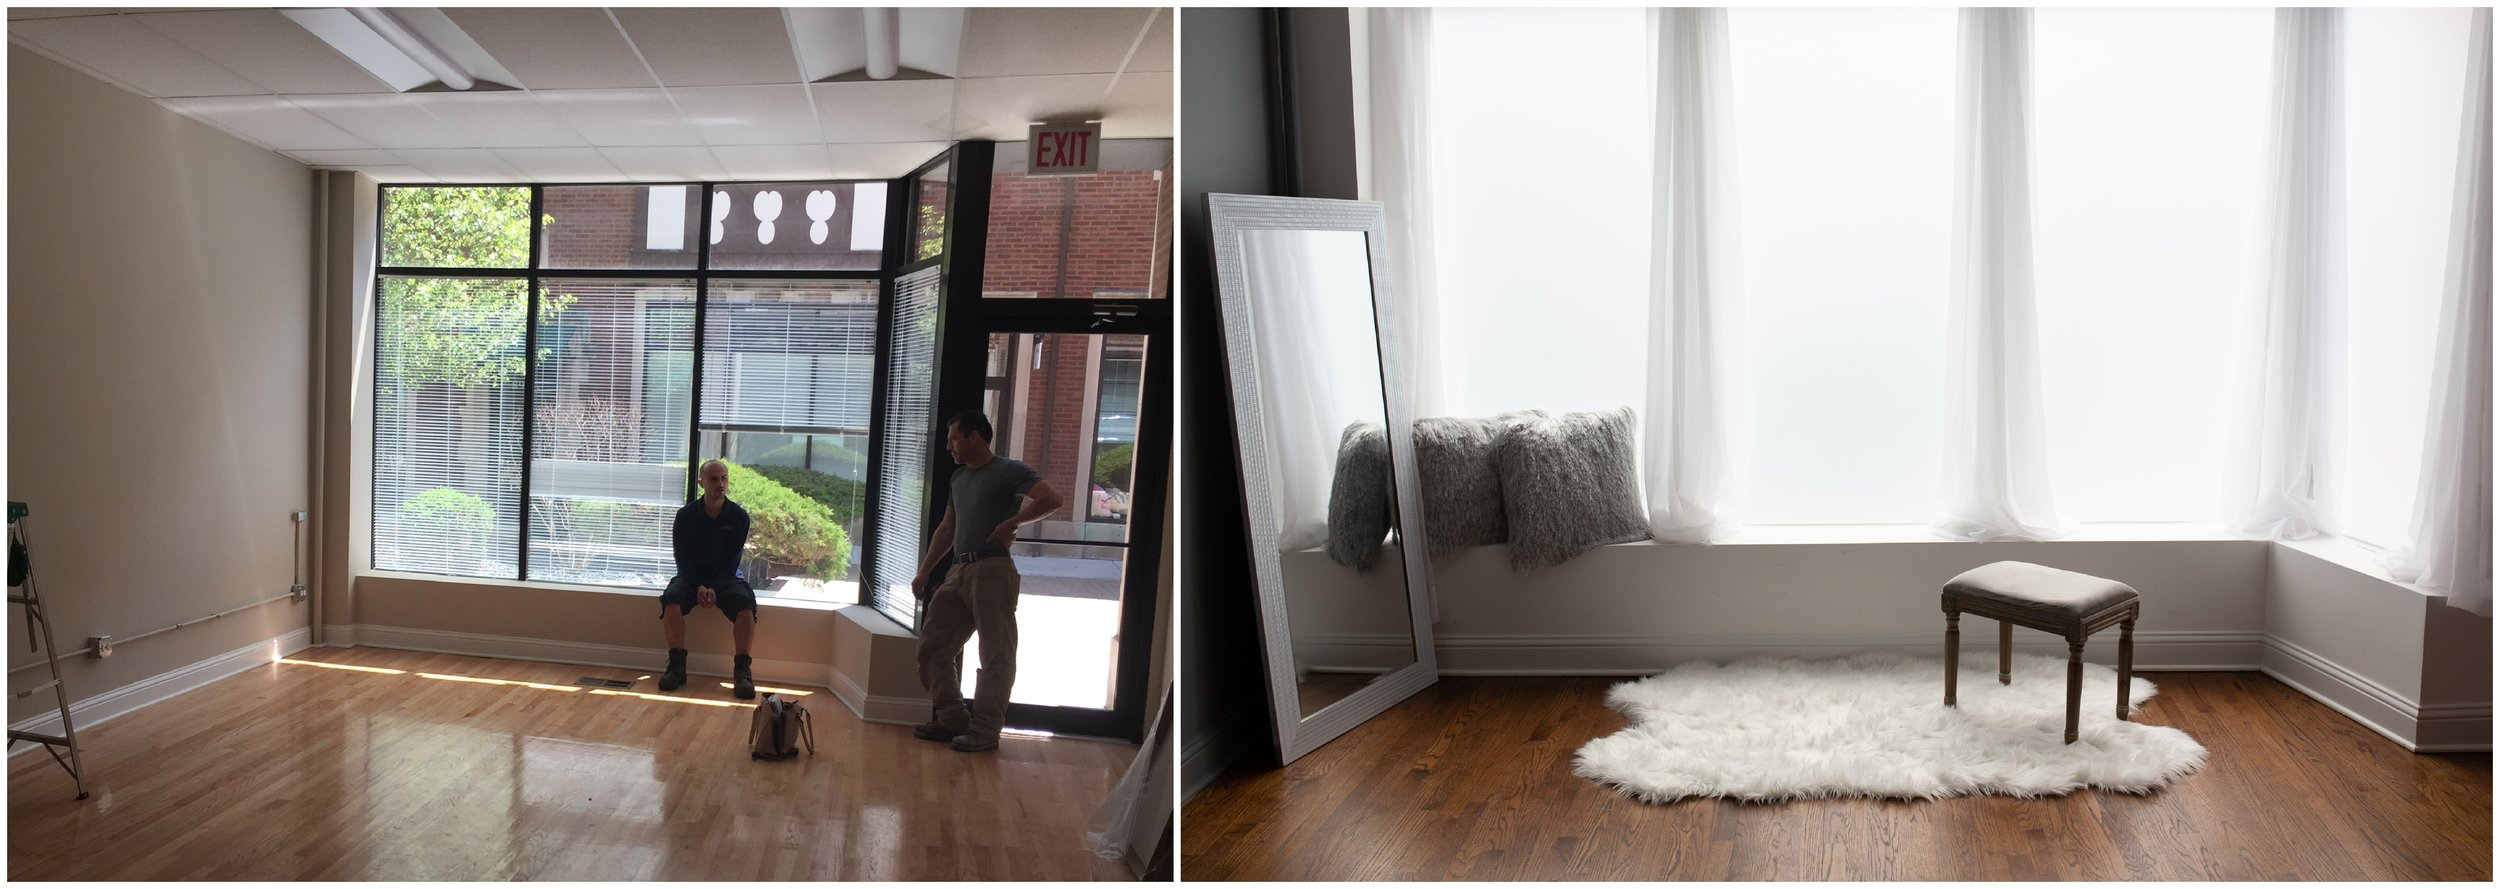 Before (left) and after renovation (right) - Chicago Boudoir Photography studio